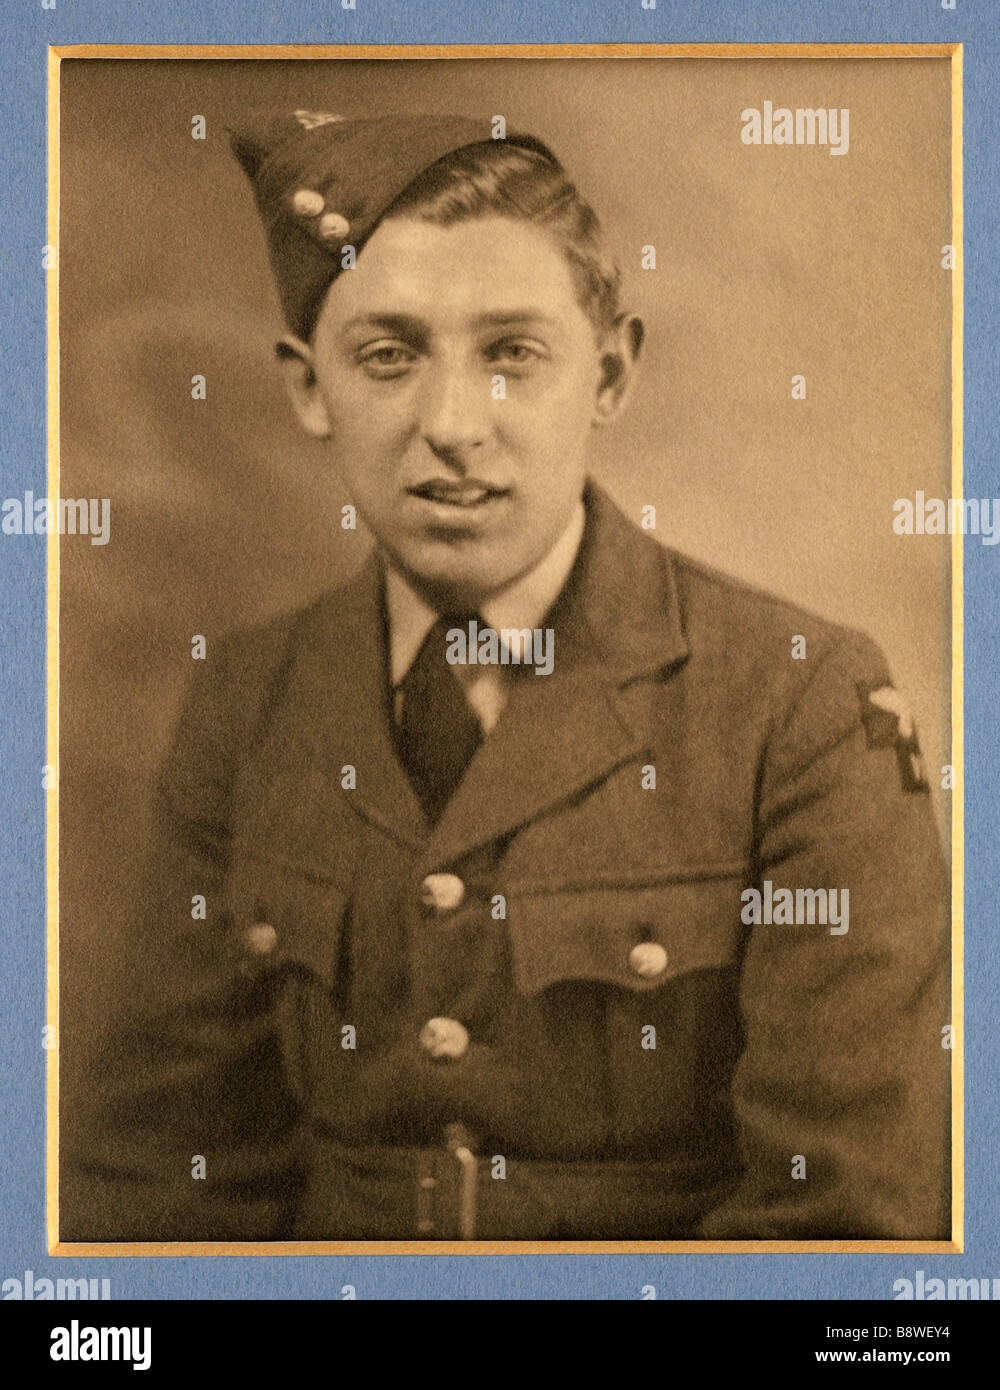 Young man in a British Royal Air Force uniform during the 2nd World War in 1939 - Stock Image